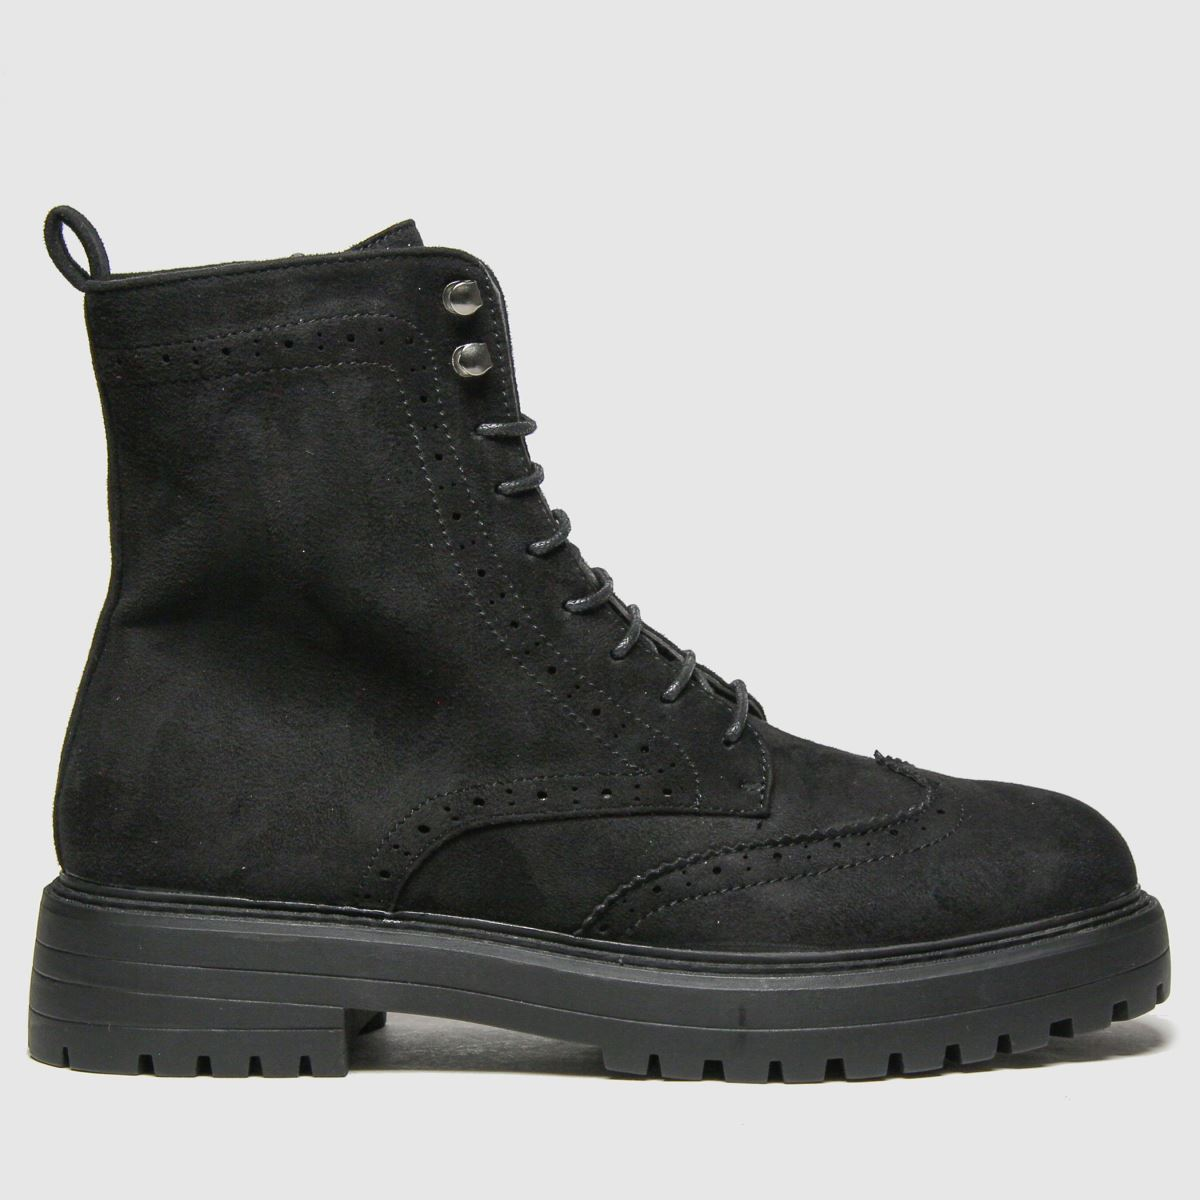 Schuh Black Anabelle Brogue Lace Up Boots